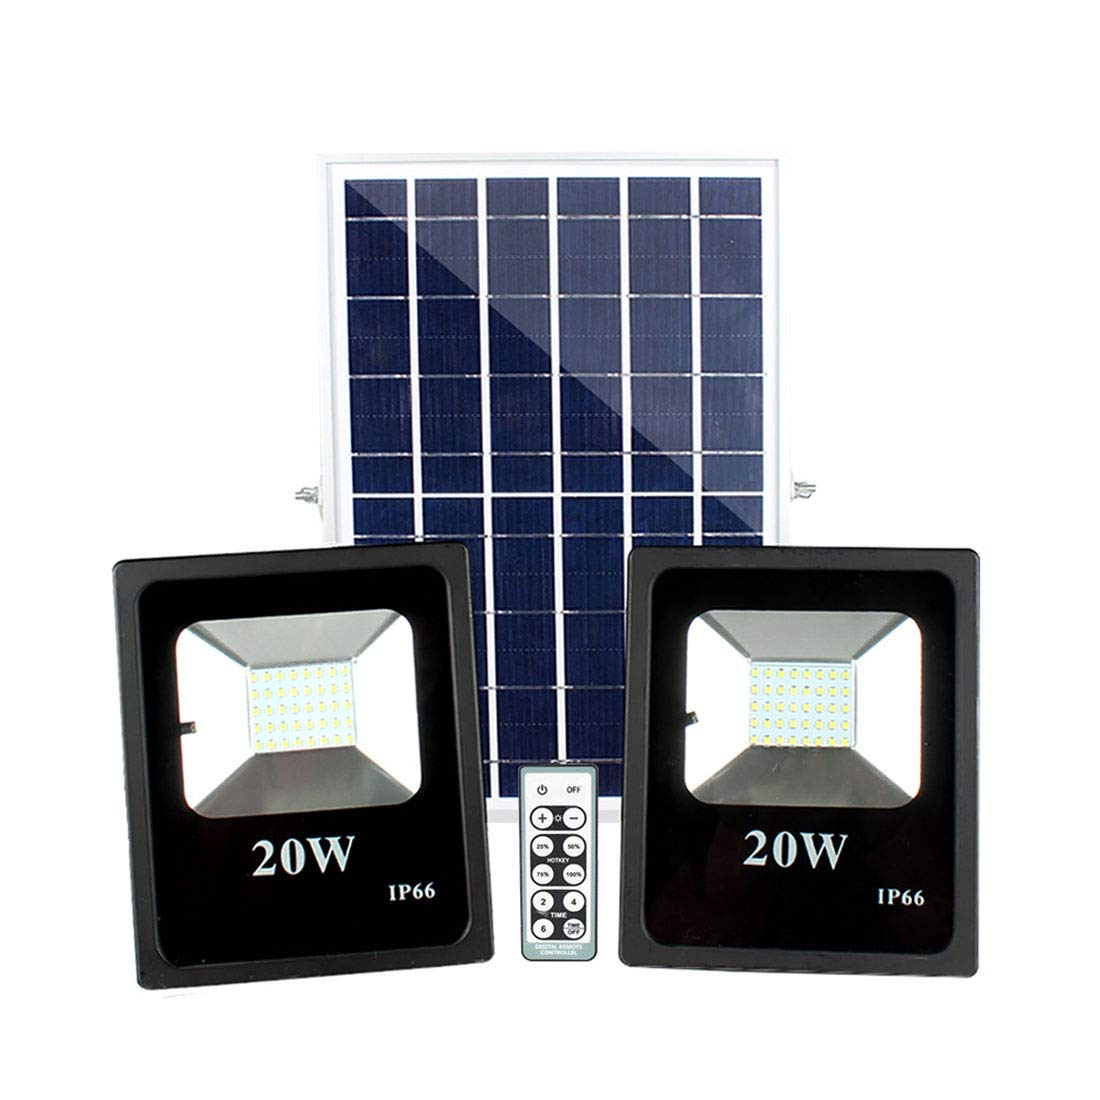 ZHIXIANG 20W 5000LM Solar Lamp Intelligent Light Control with Remote Control Switch 40pcs 2835 Lamp Beads Waterproof Solar LED Floodlight (20W) by ZHIXIANG